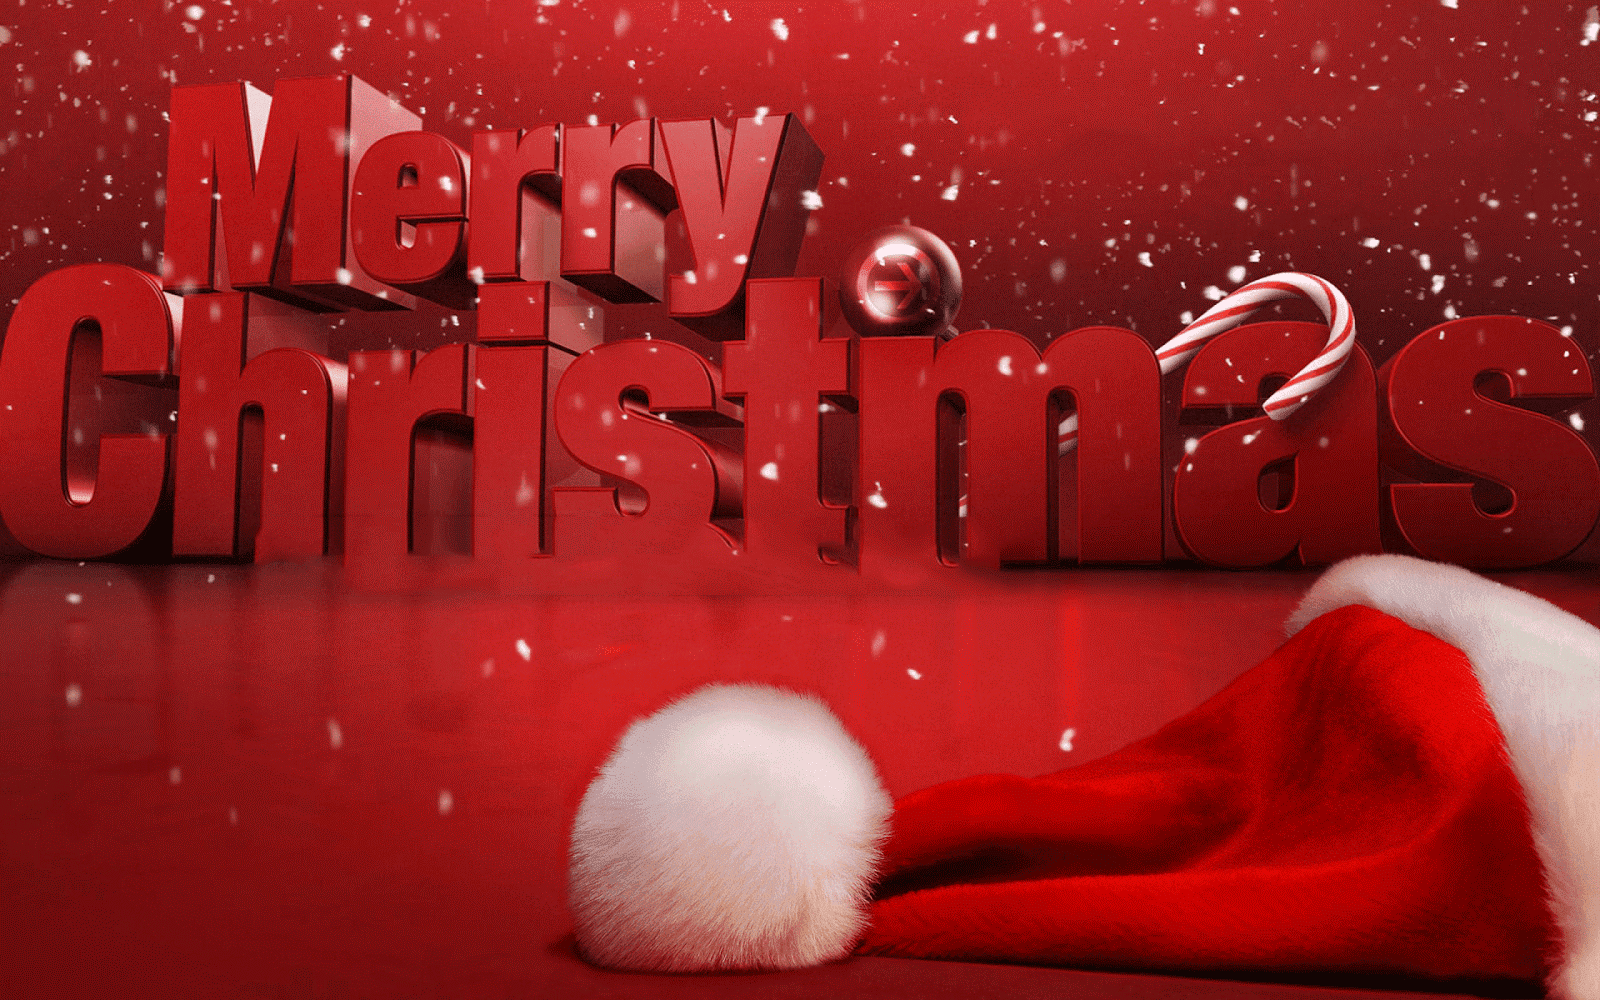 Good Morning Cute Mobile Wallpaper Christmas Day Wallpapers Hd Download Free 1080p